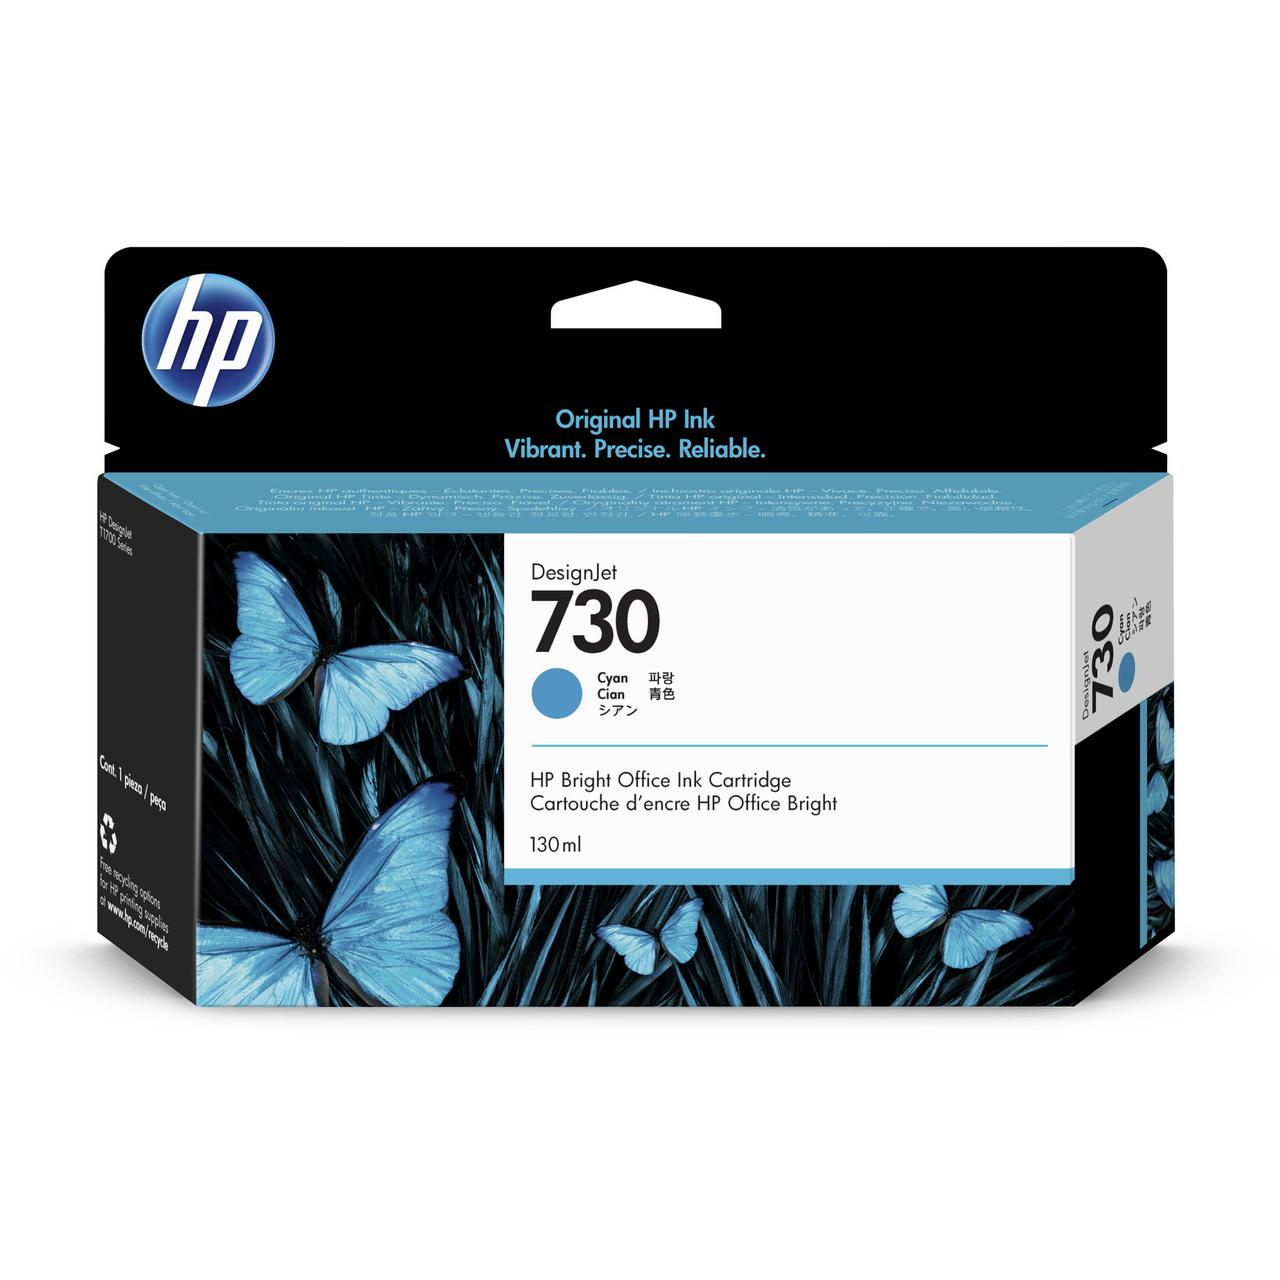 HP P2V62A 730 Cyan Ink Cartridge for